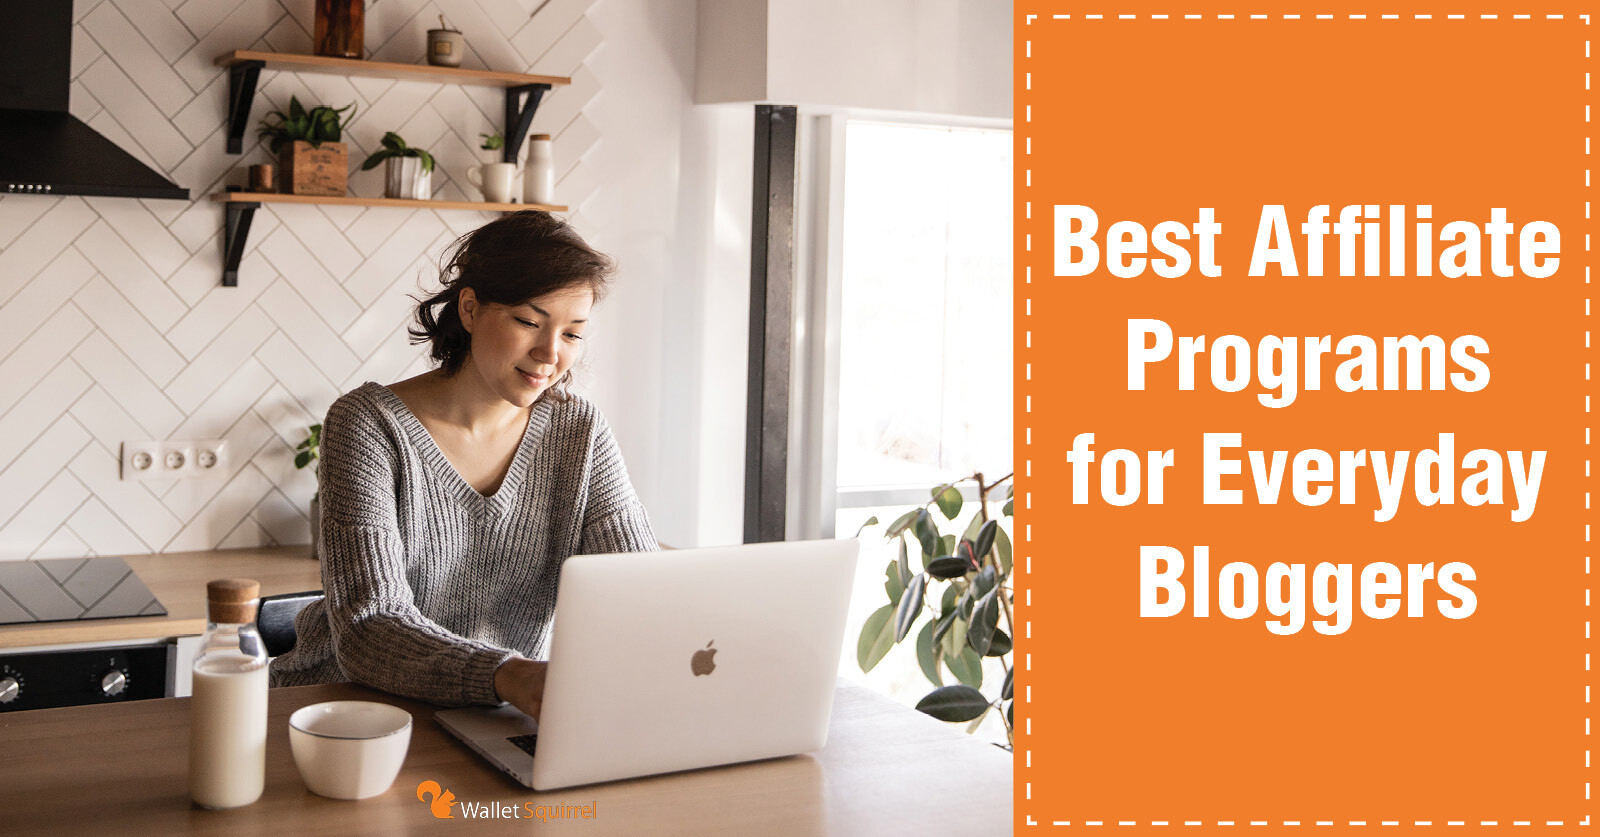 Best Affiliate Programs for Every Day Bloggers